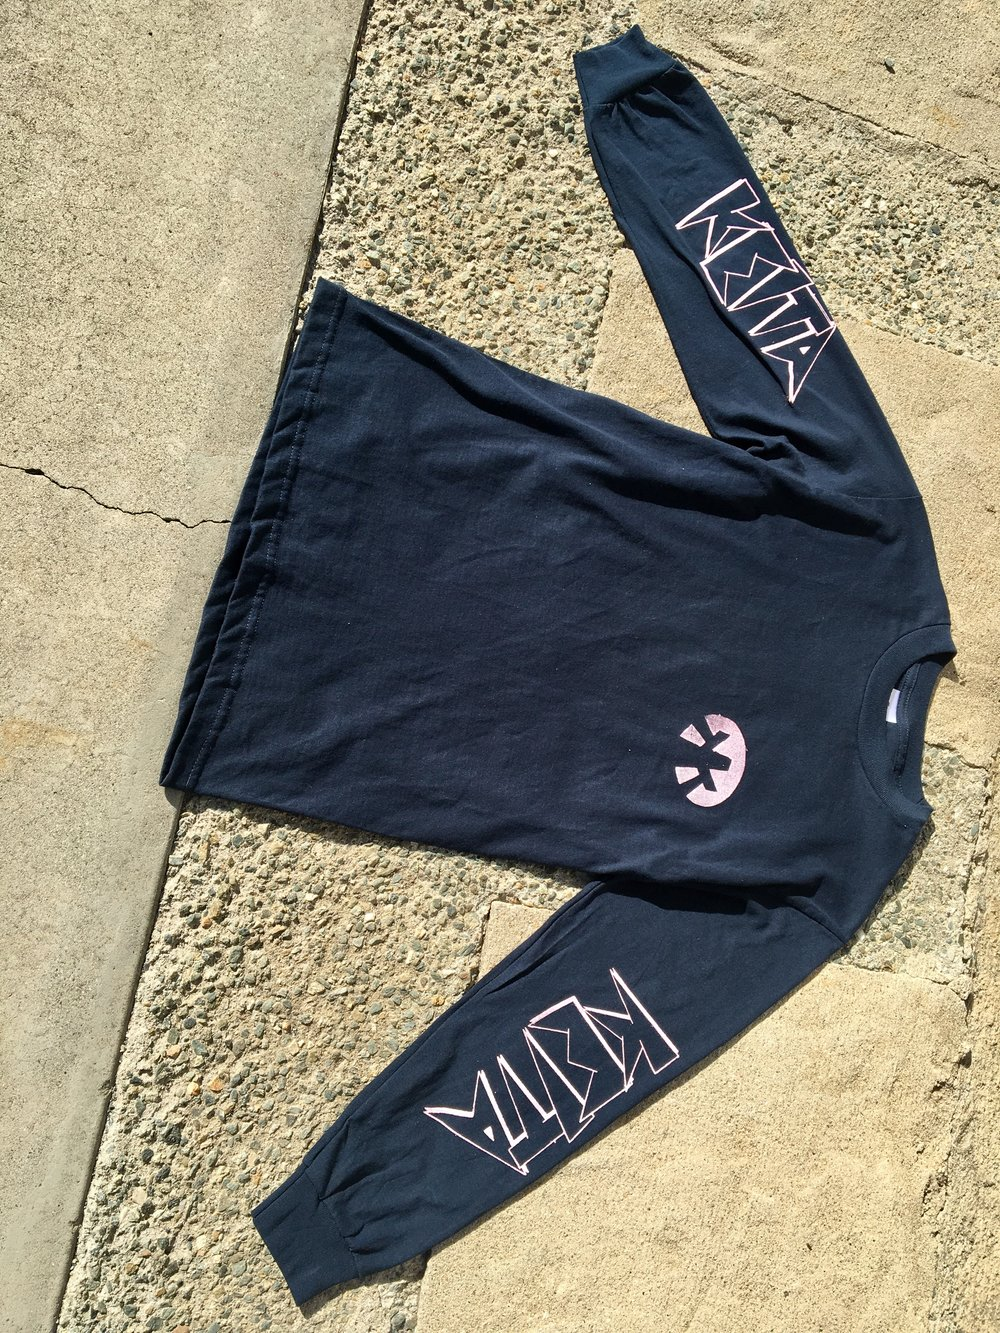 Navy Blue w/ Pink ink... Regular $40... Holiday $20.... For direct sale.Contact: keita71@cox.net